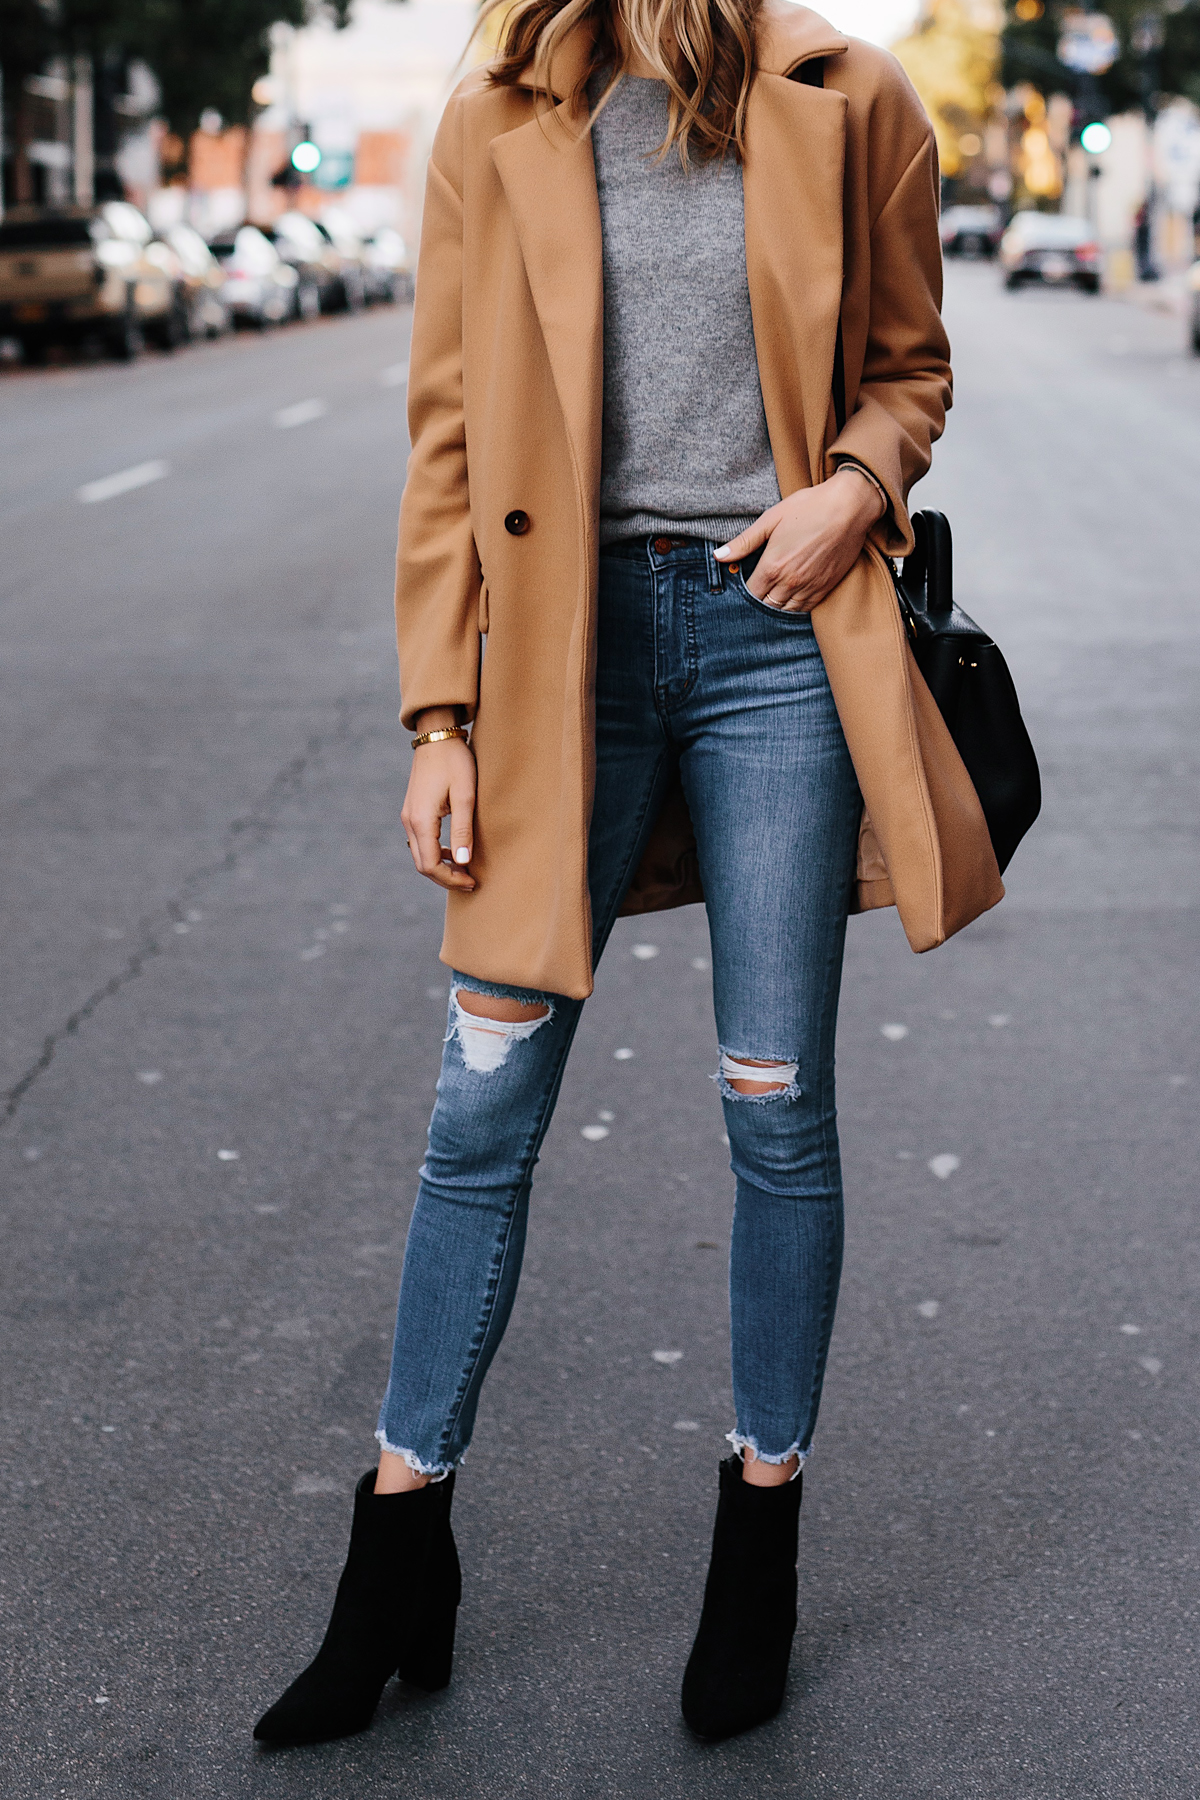 Woman Wearing Camel Coat Grey Sweater Denim Ripped Skinny Jeans Black Booties Outfit Fashion Jackson San Diego Fashion Blogger Street Style